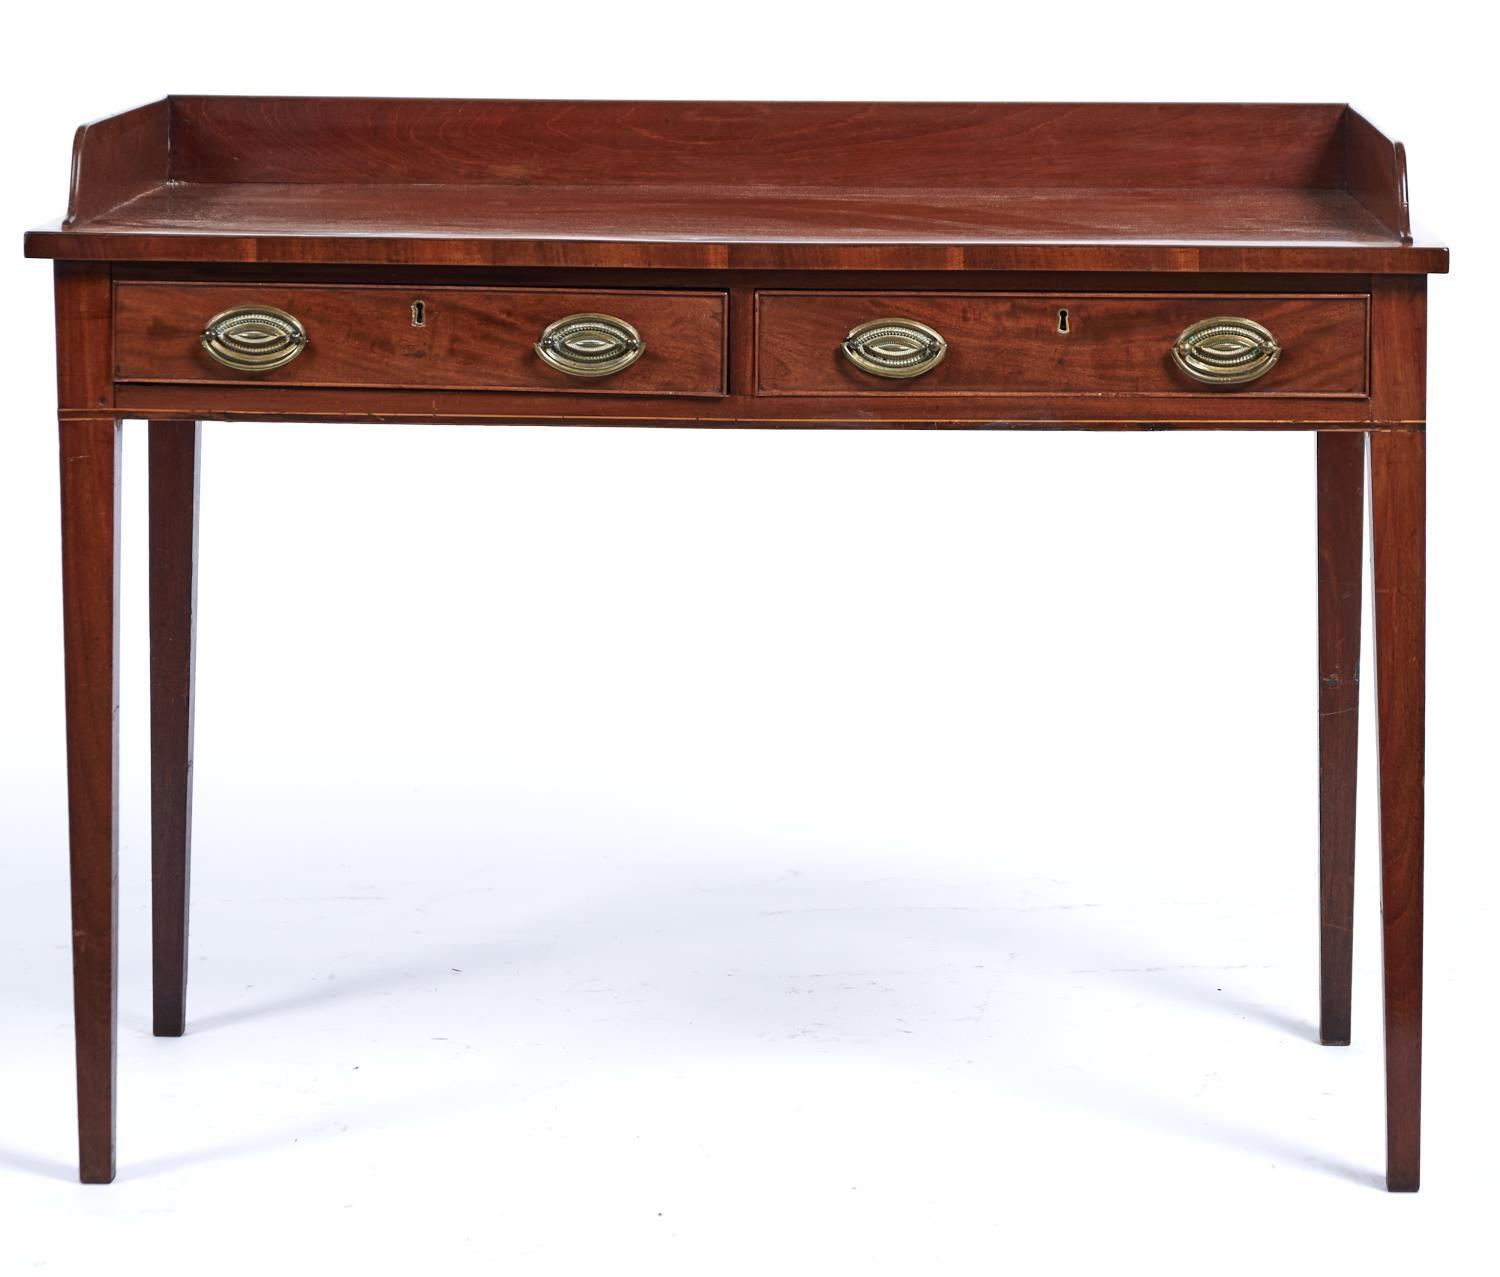 A GEORGE III MAHOGANY WASHSTAND, C1800, WITH THREE QUARTER GALLERY ABOVE TWO COCKBEADED FRIEZE